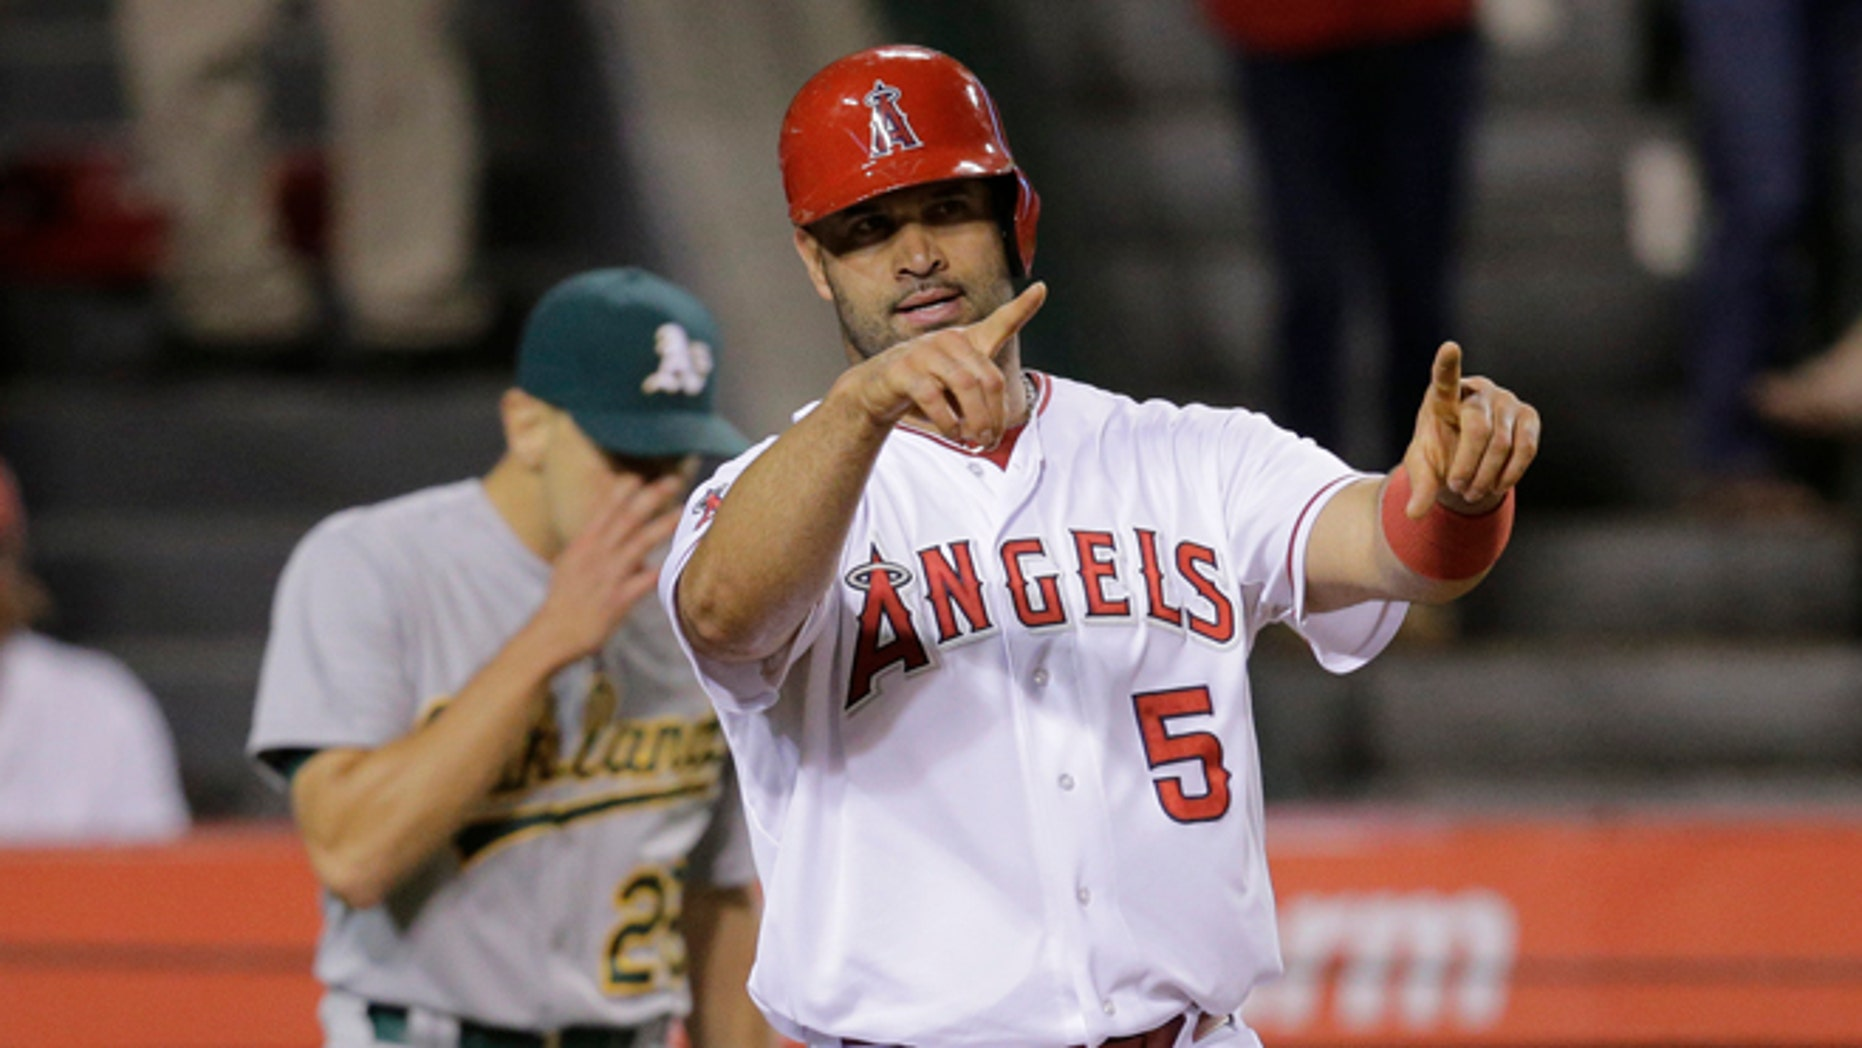 Los Angeles Angels' Albert Pujols points to teammate David Freese after he scored on a single hit by Freese during the fifth inning of a baseball game against the Oakland Athletics, Tuesday, Sept. 29, 2015, in Anaheim, Calif. (AP Photo/Jae C. Hong)